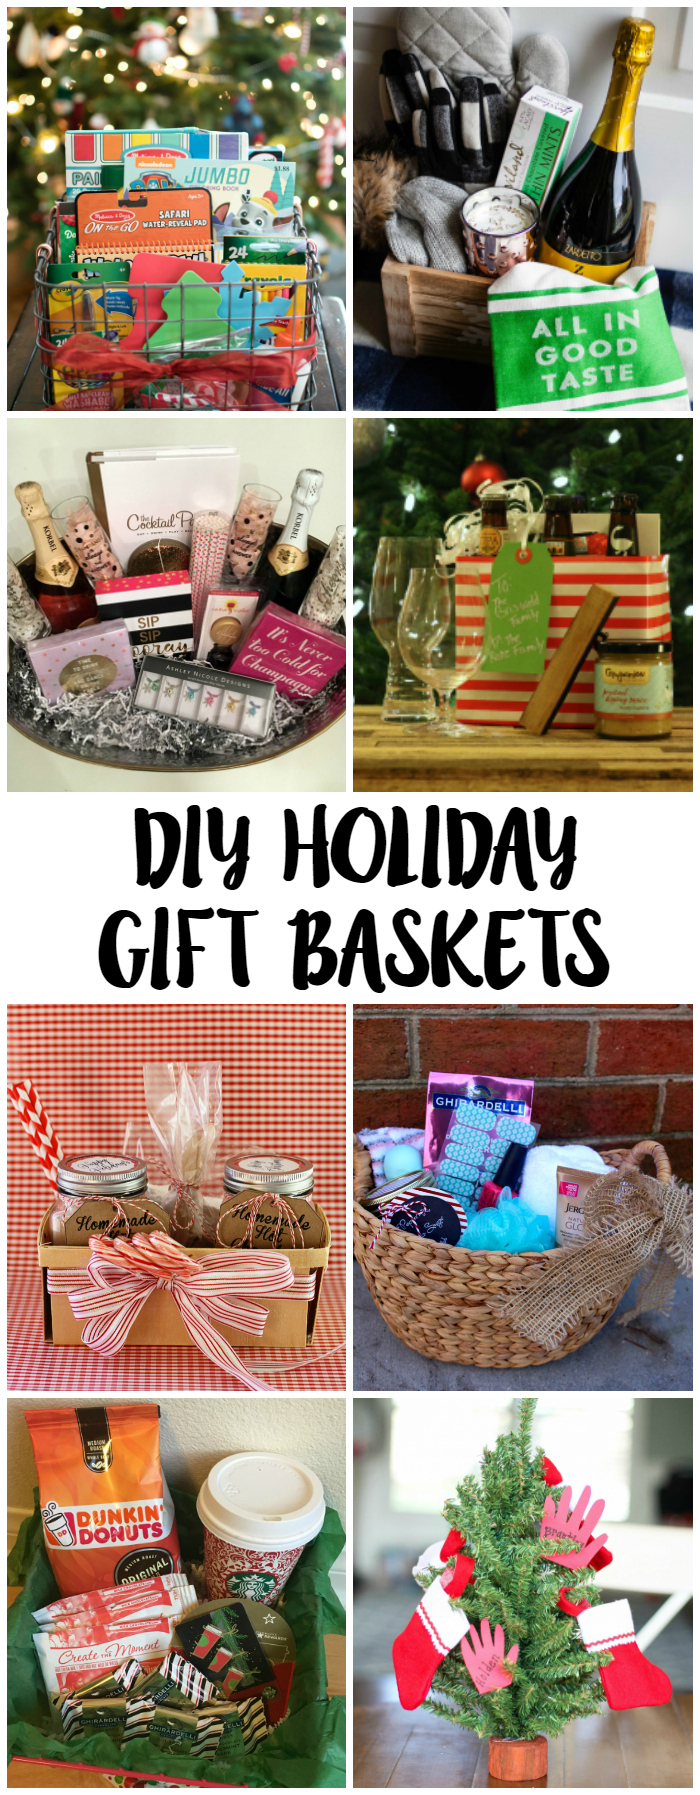 DIY Holiday Gift Basket Ideas